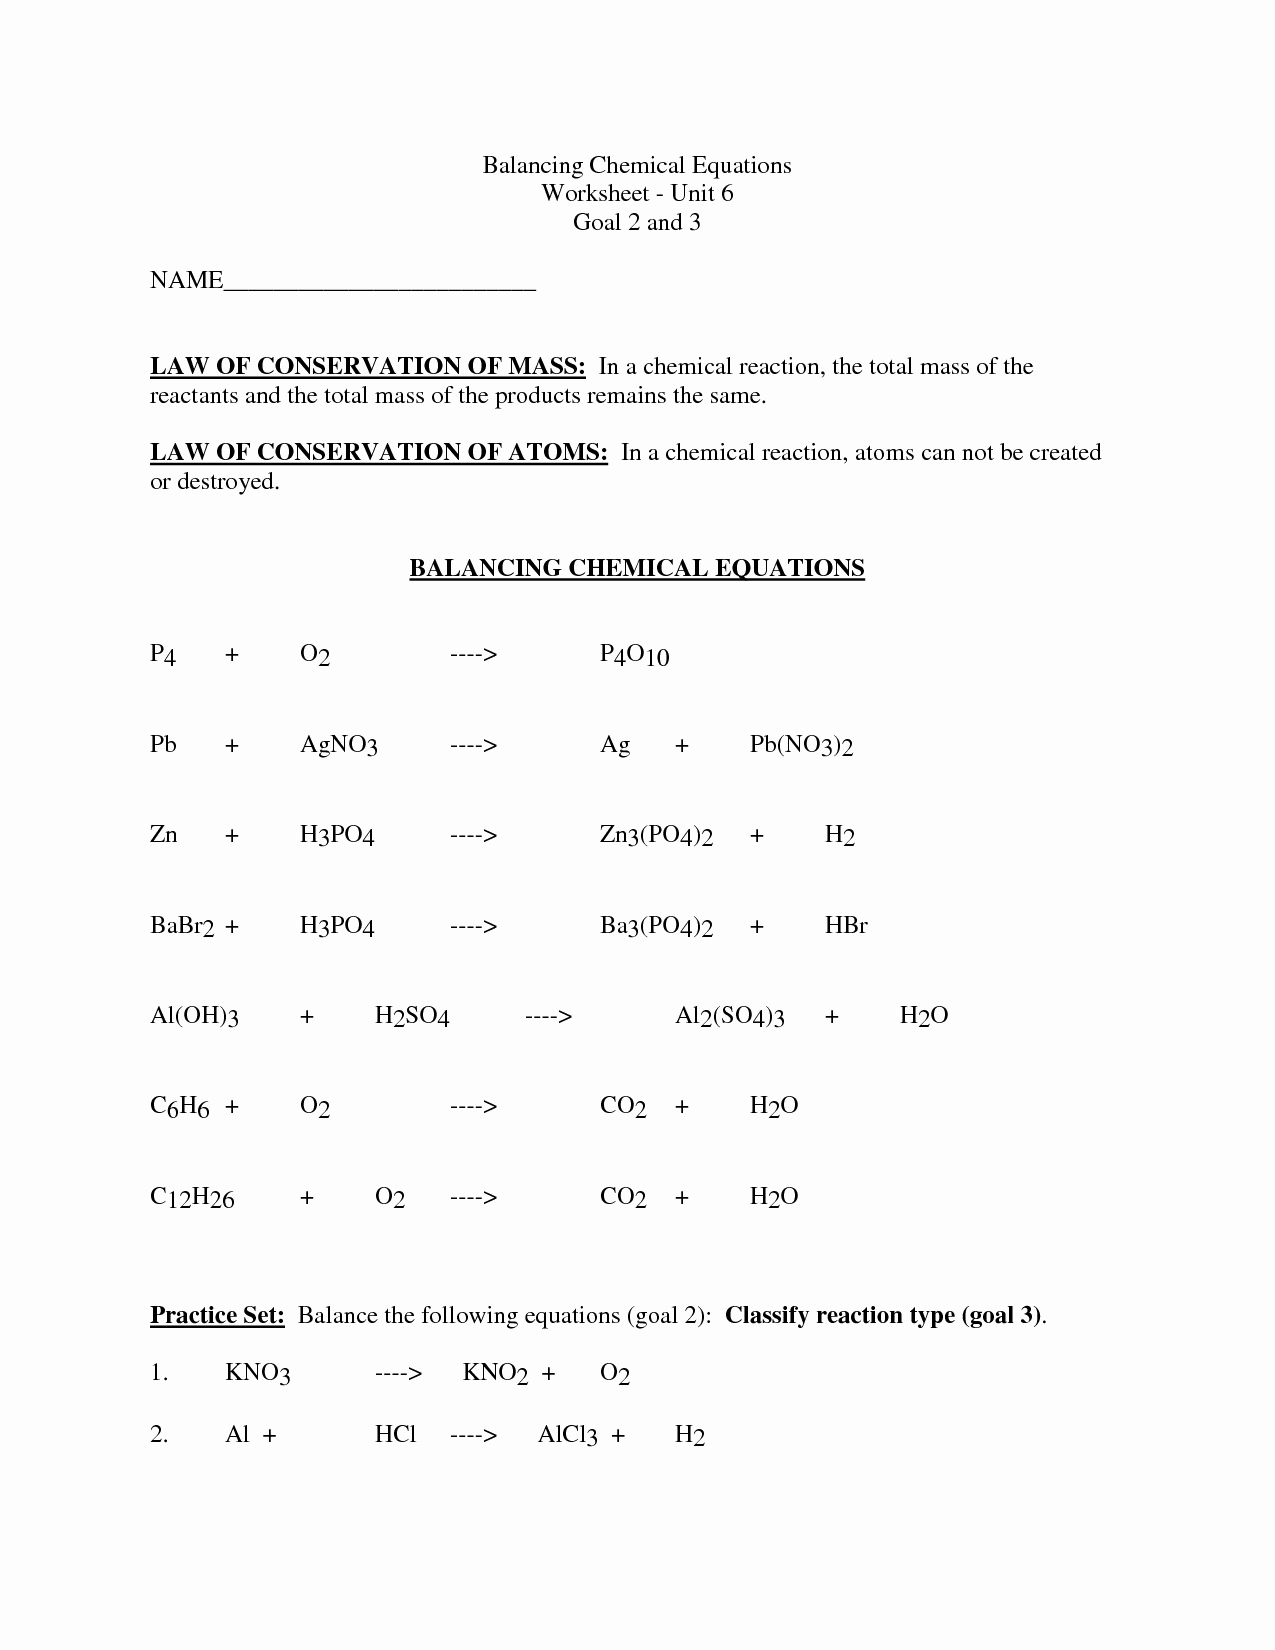 Balancing Chemical Equations Worksheet 1 Fresh 12 Best Of Balancing Chemical Equations Worksheet